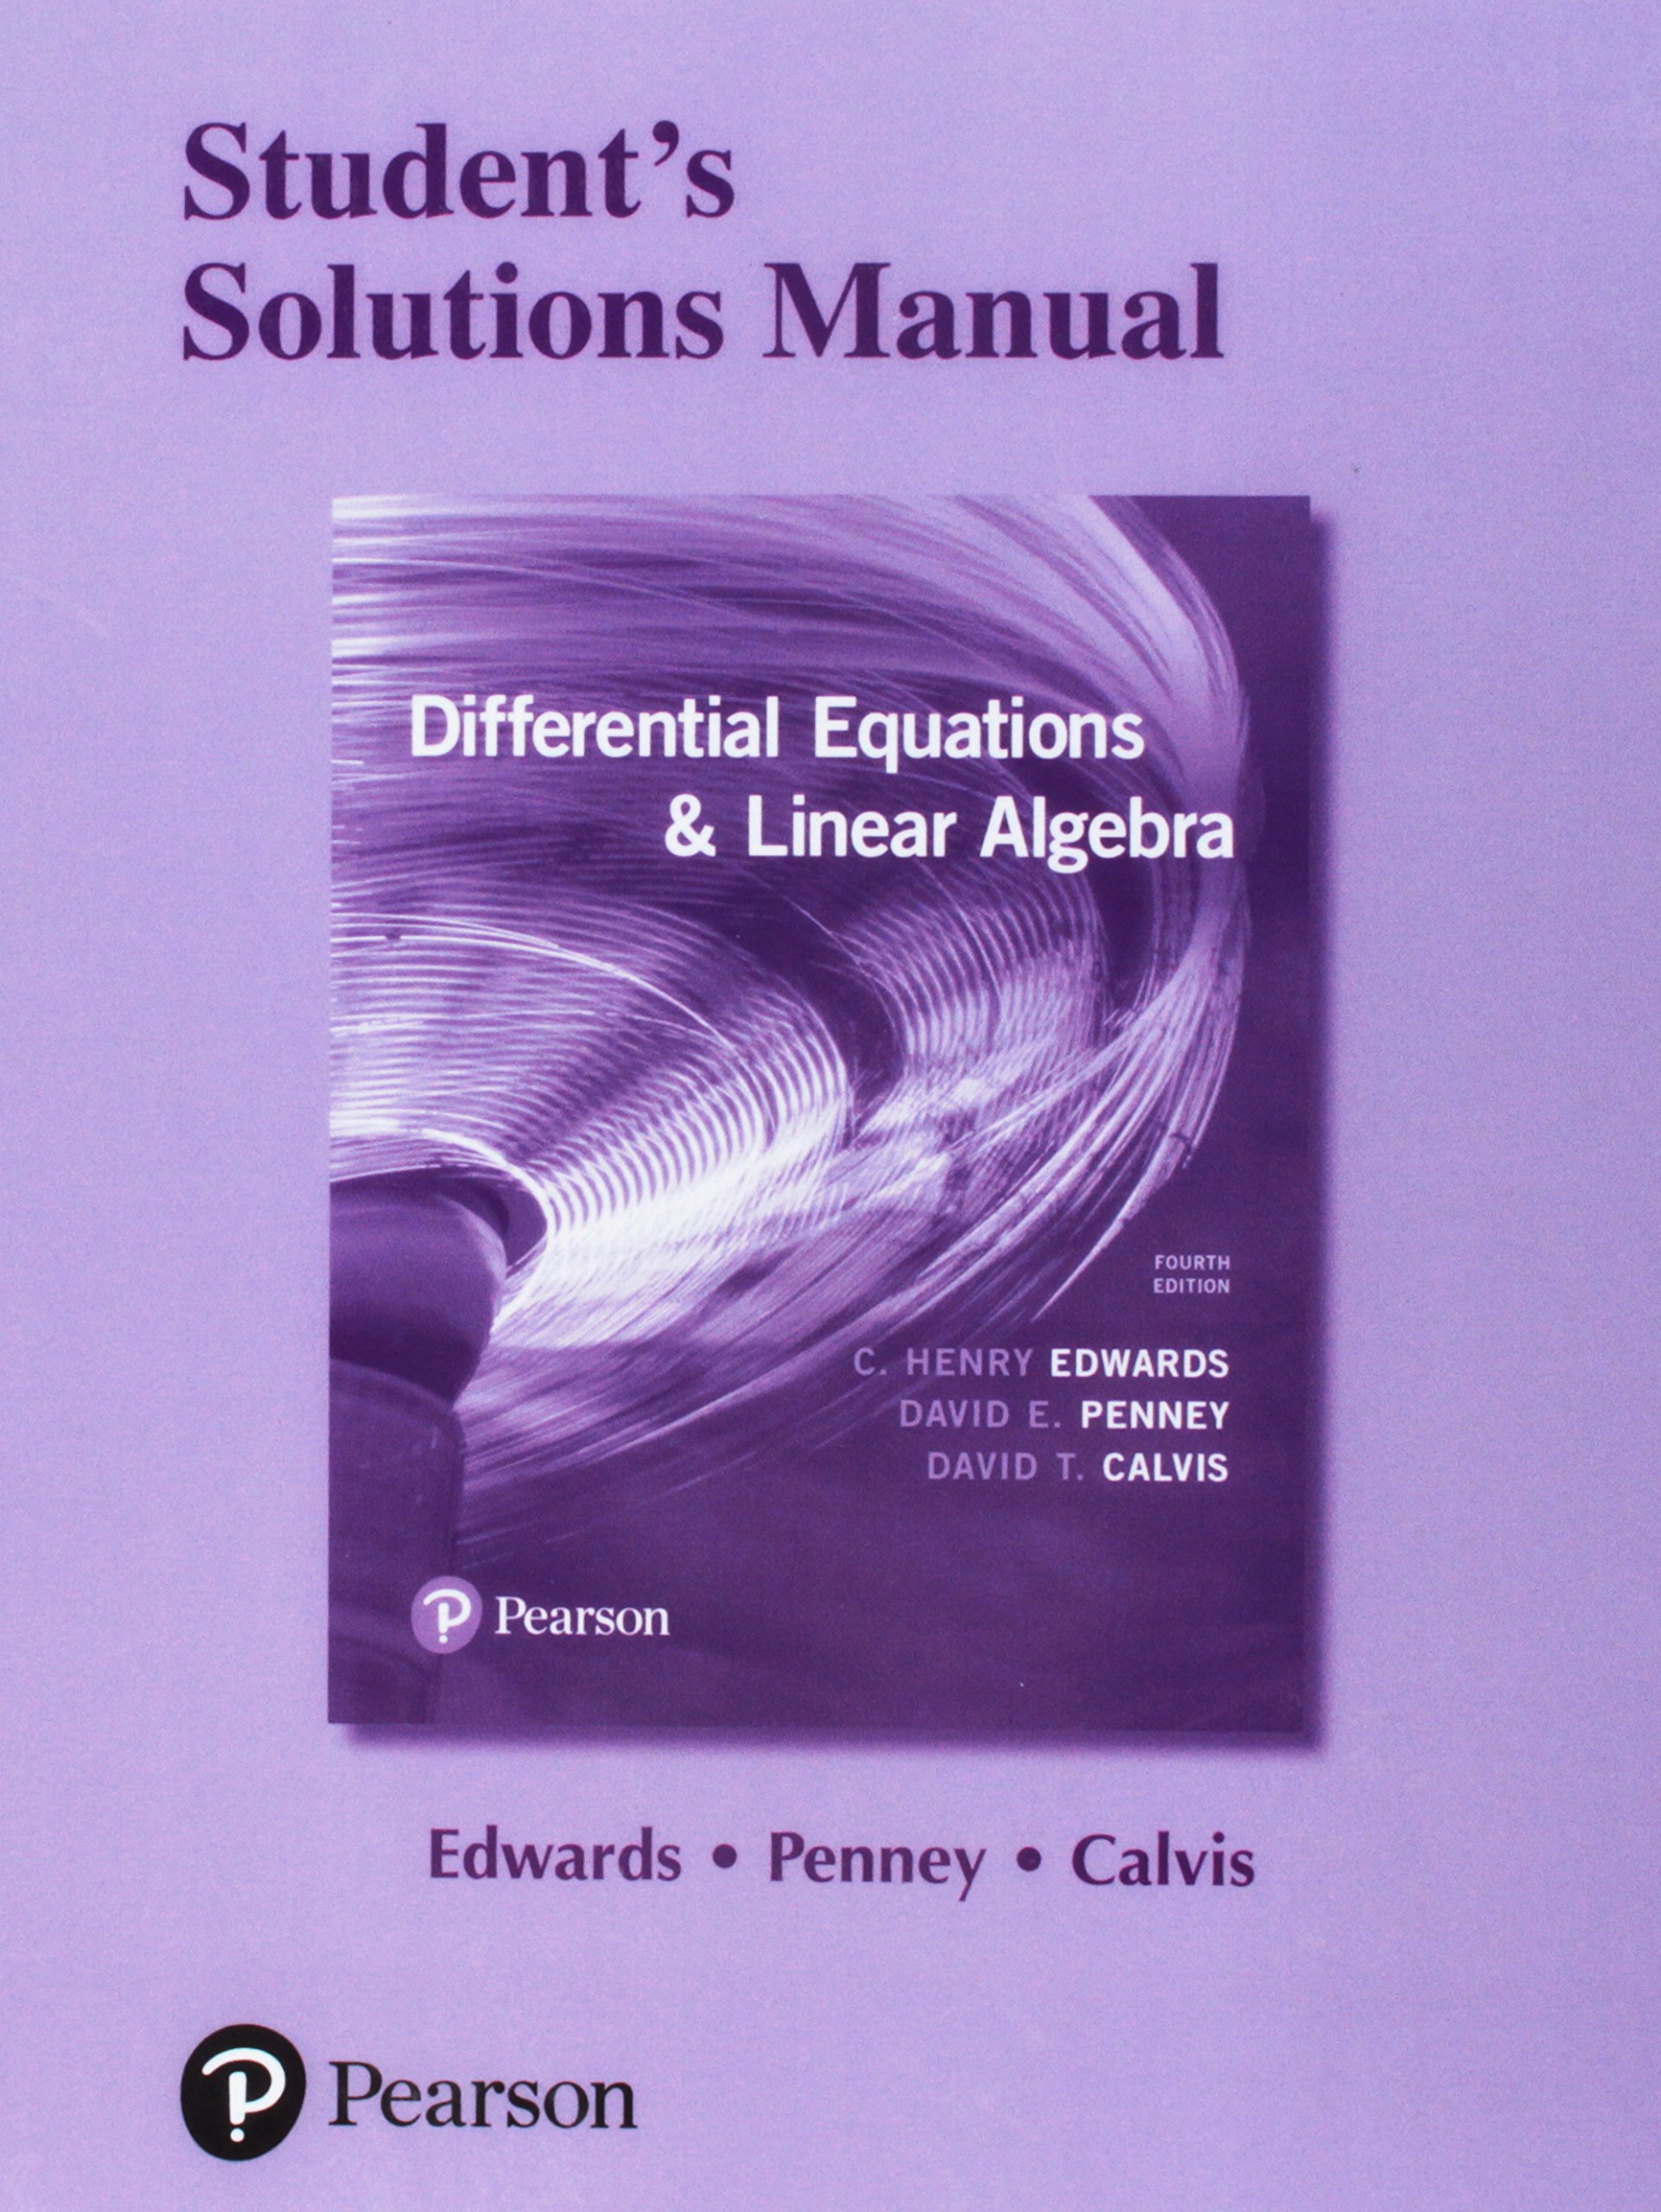 Students' Solutions Manual for Differential Equations and Linear Algebra:  C. Henry Edwards, David E. Penney, David Calvis: 9780134498140: Books -  Amazon.ca